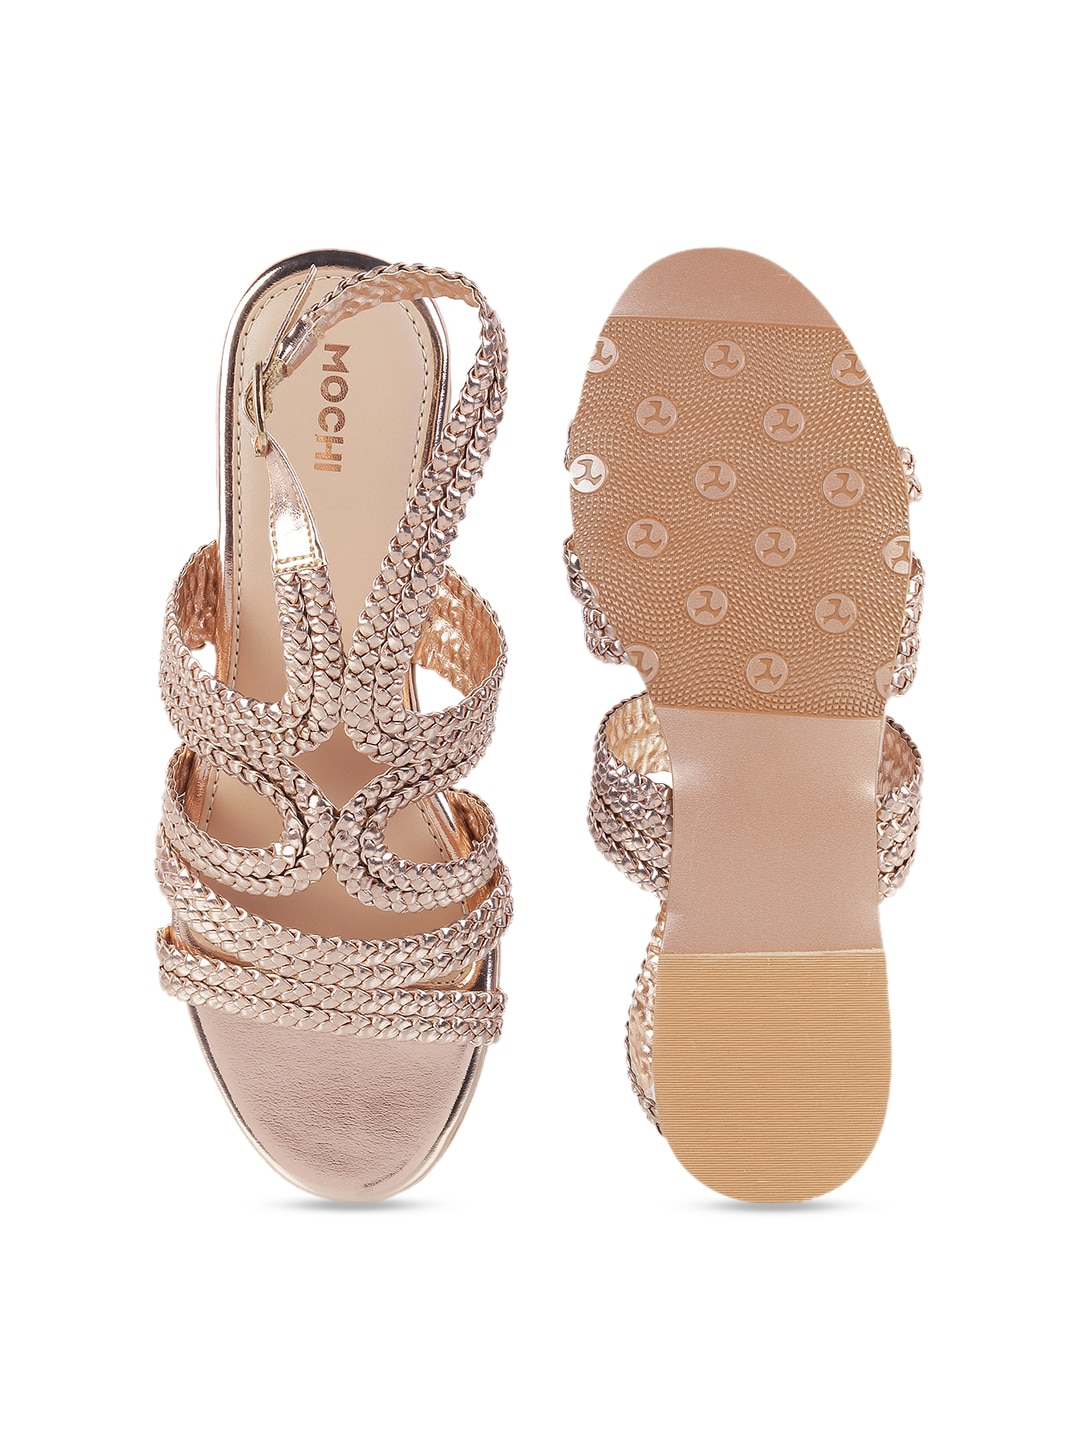 Mochi Women Gold-Toned Textured Open Toe Flats